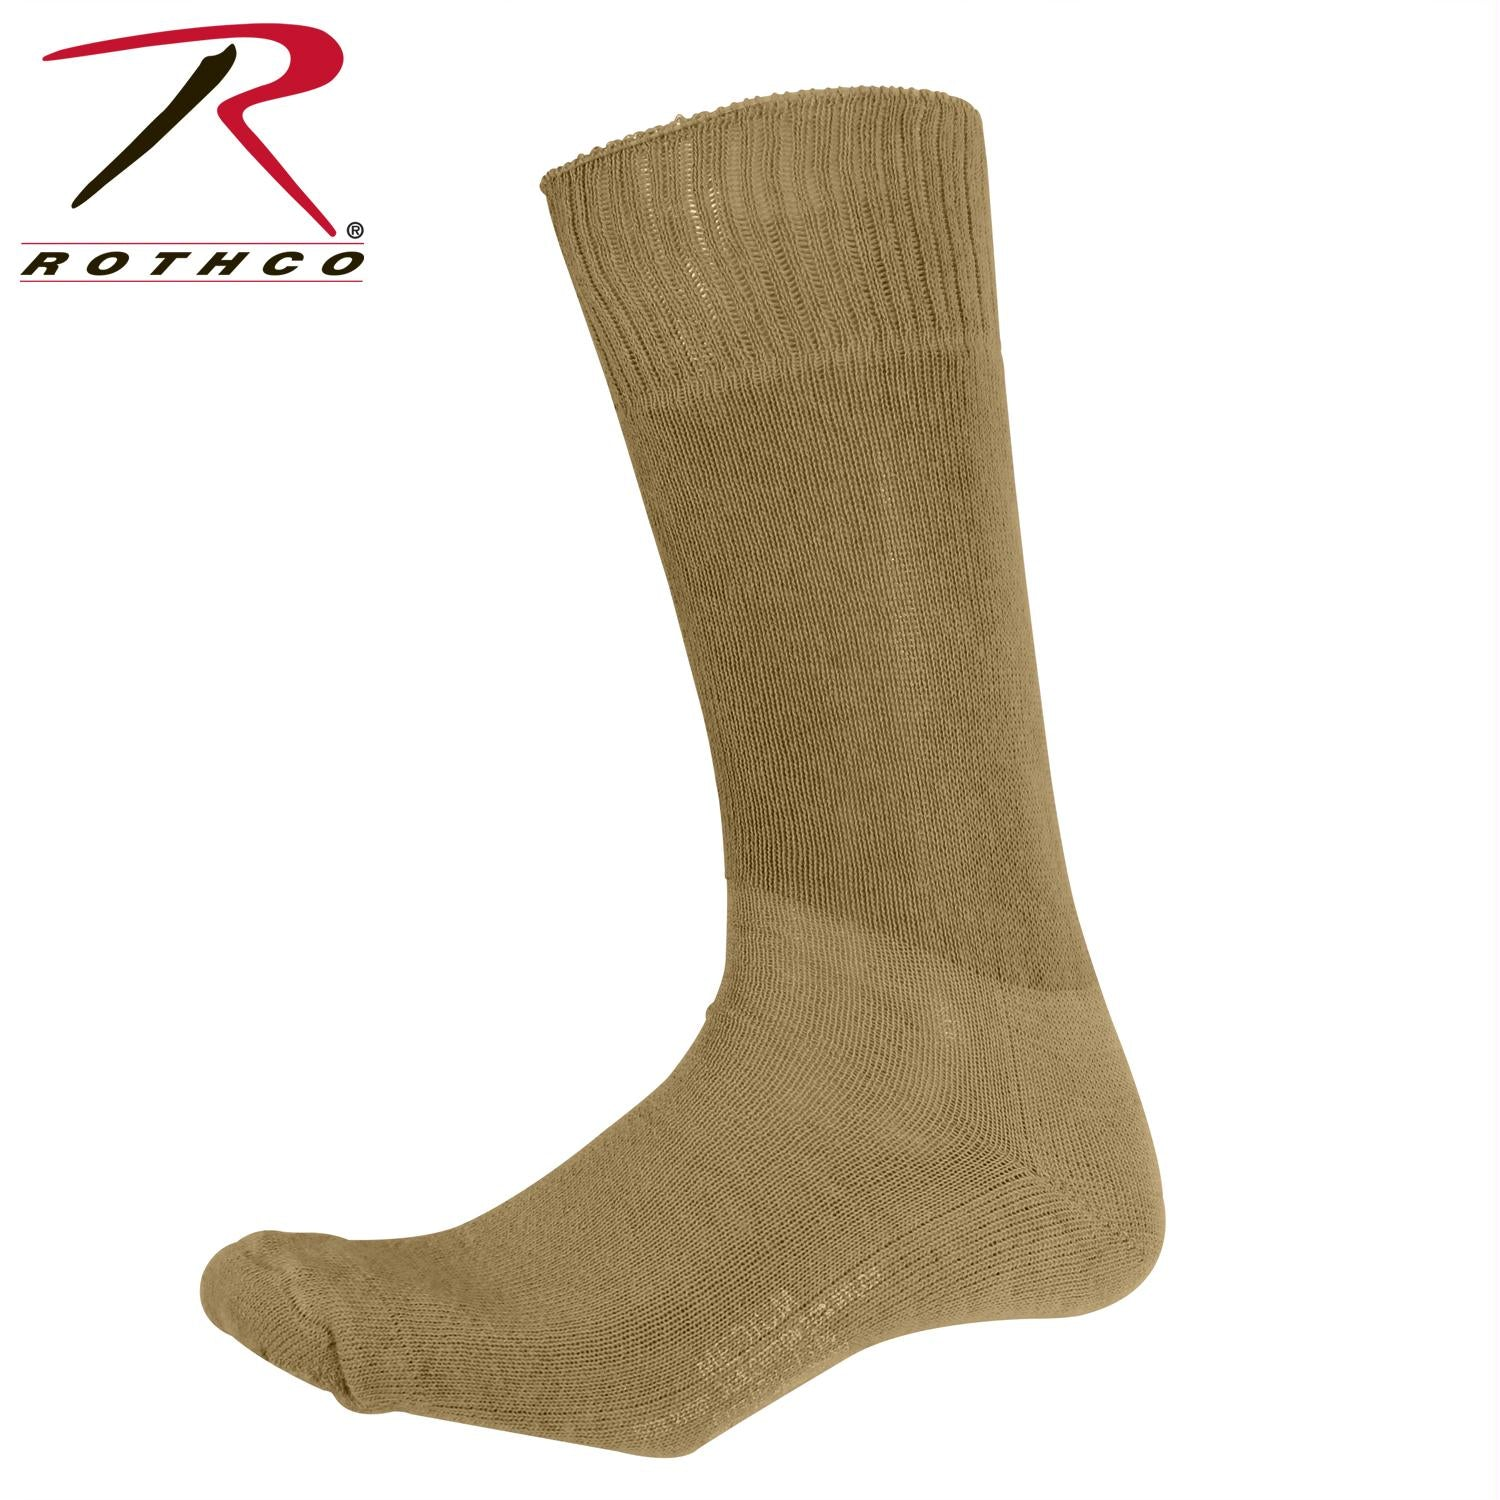 Rothco G.I. Type Cushion Sole Socks - Coyote Brown / L